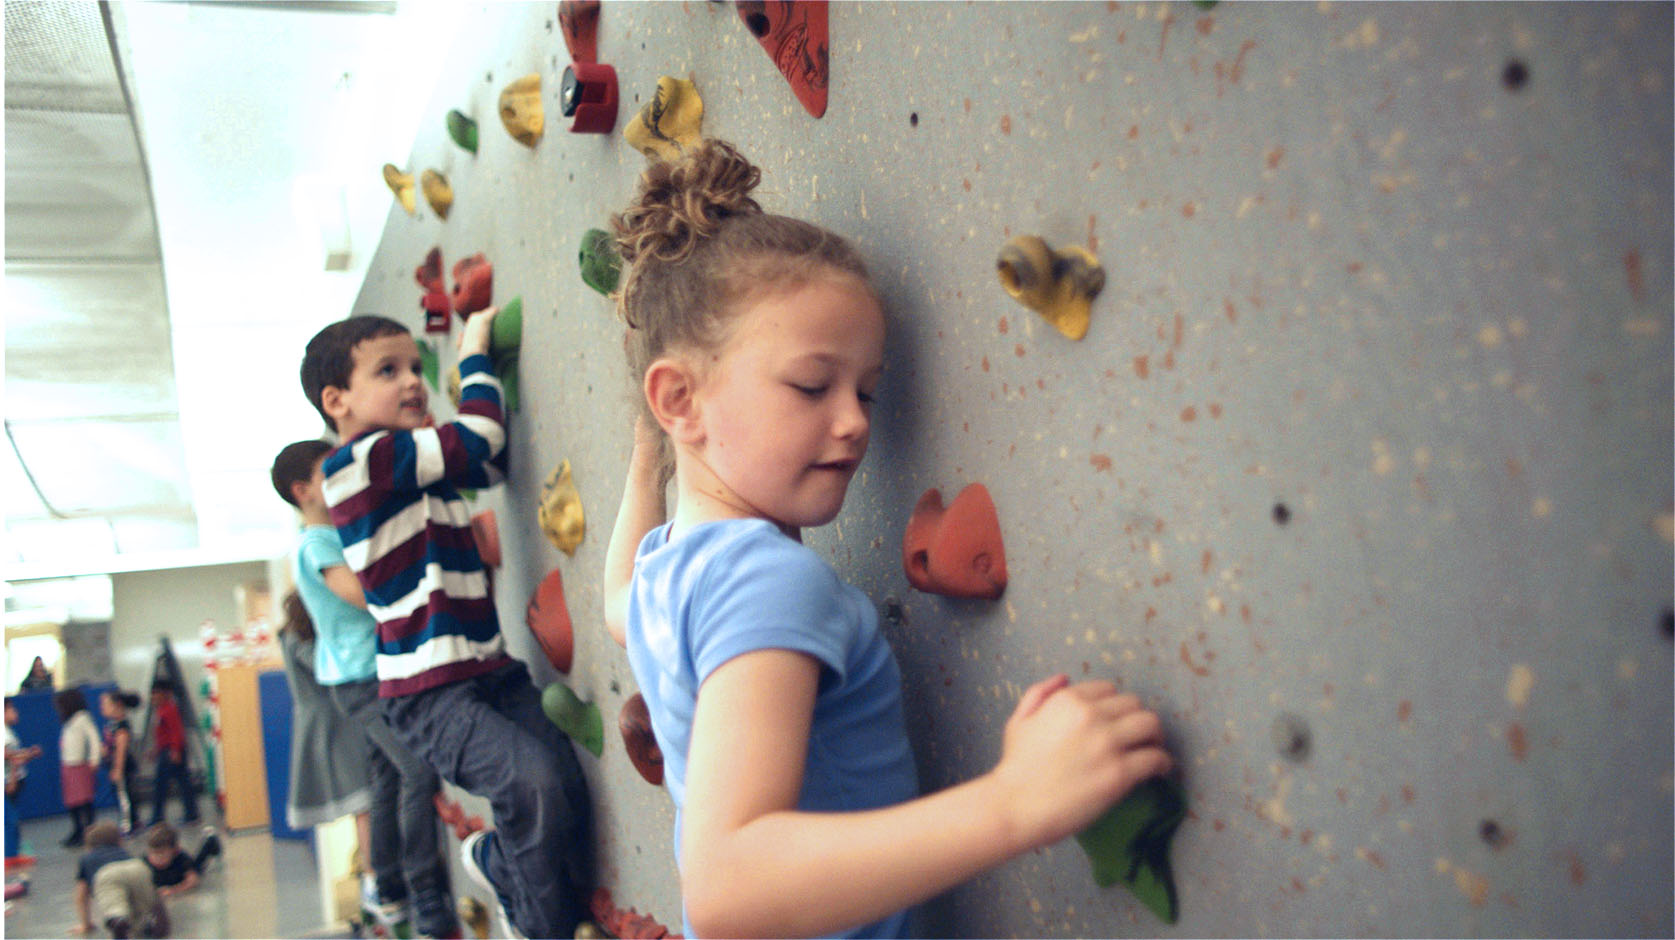 Several kindergarteners climbing a rock wall in a private school